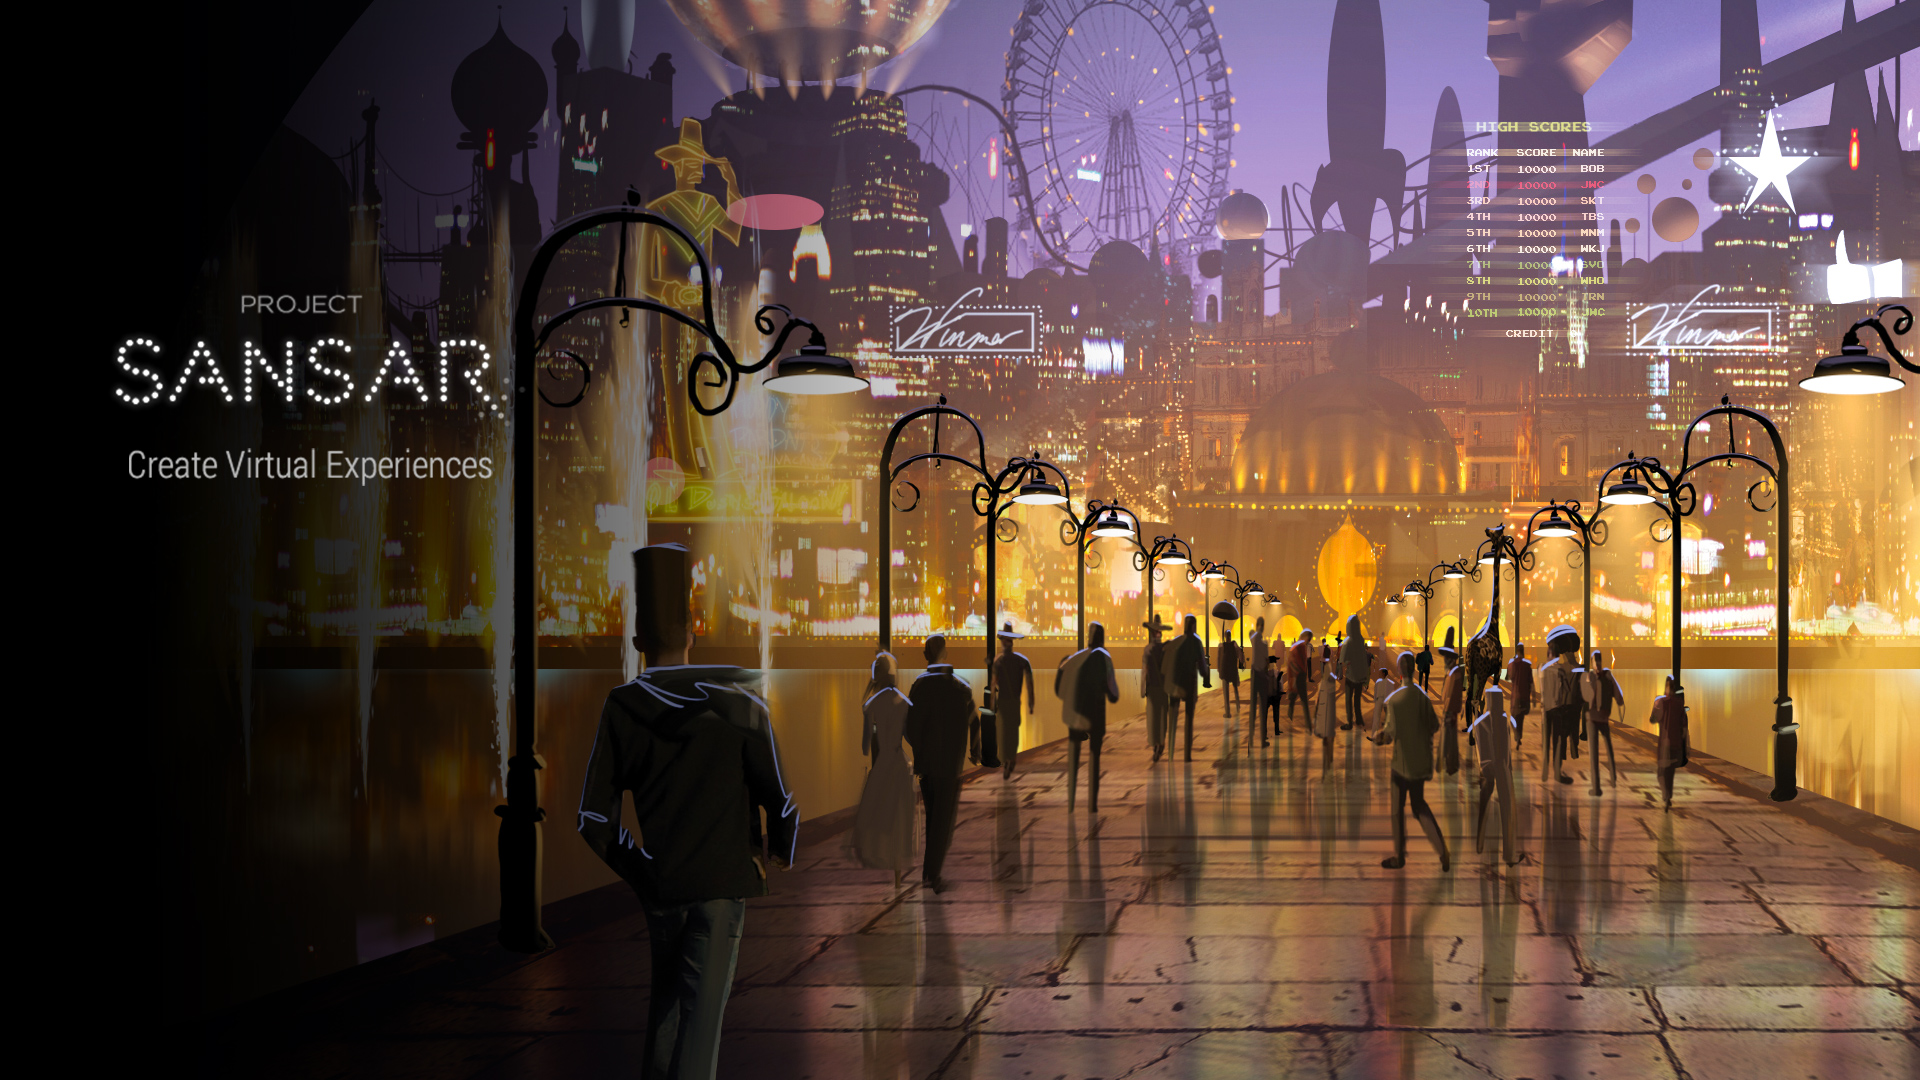 Linden Lab, 'Second Life' Creator, Developing 'Project Sansar' For VR and Mobile